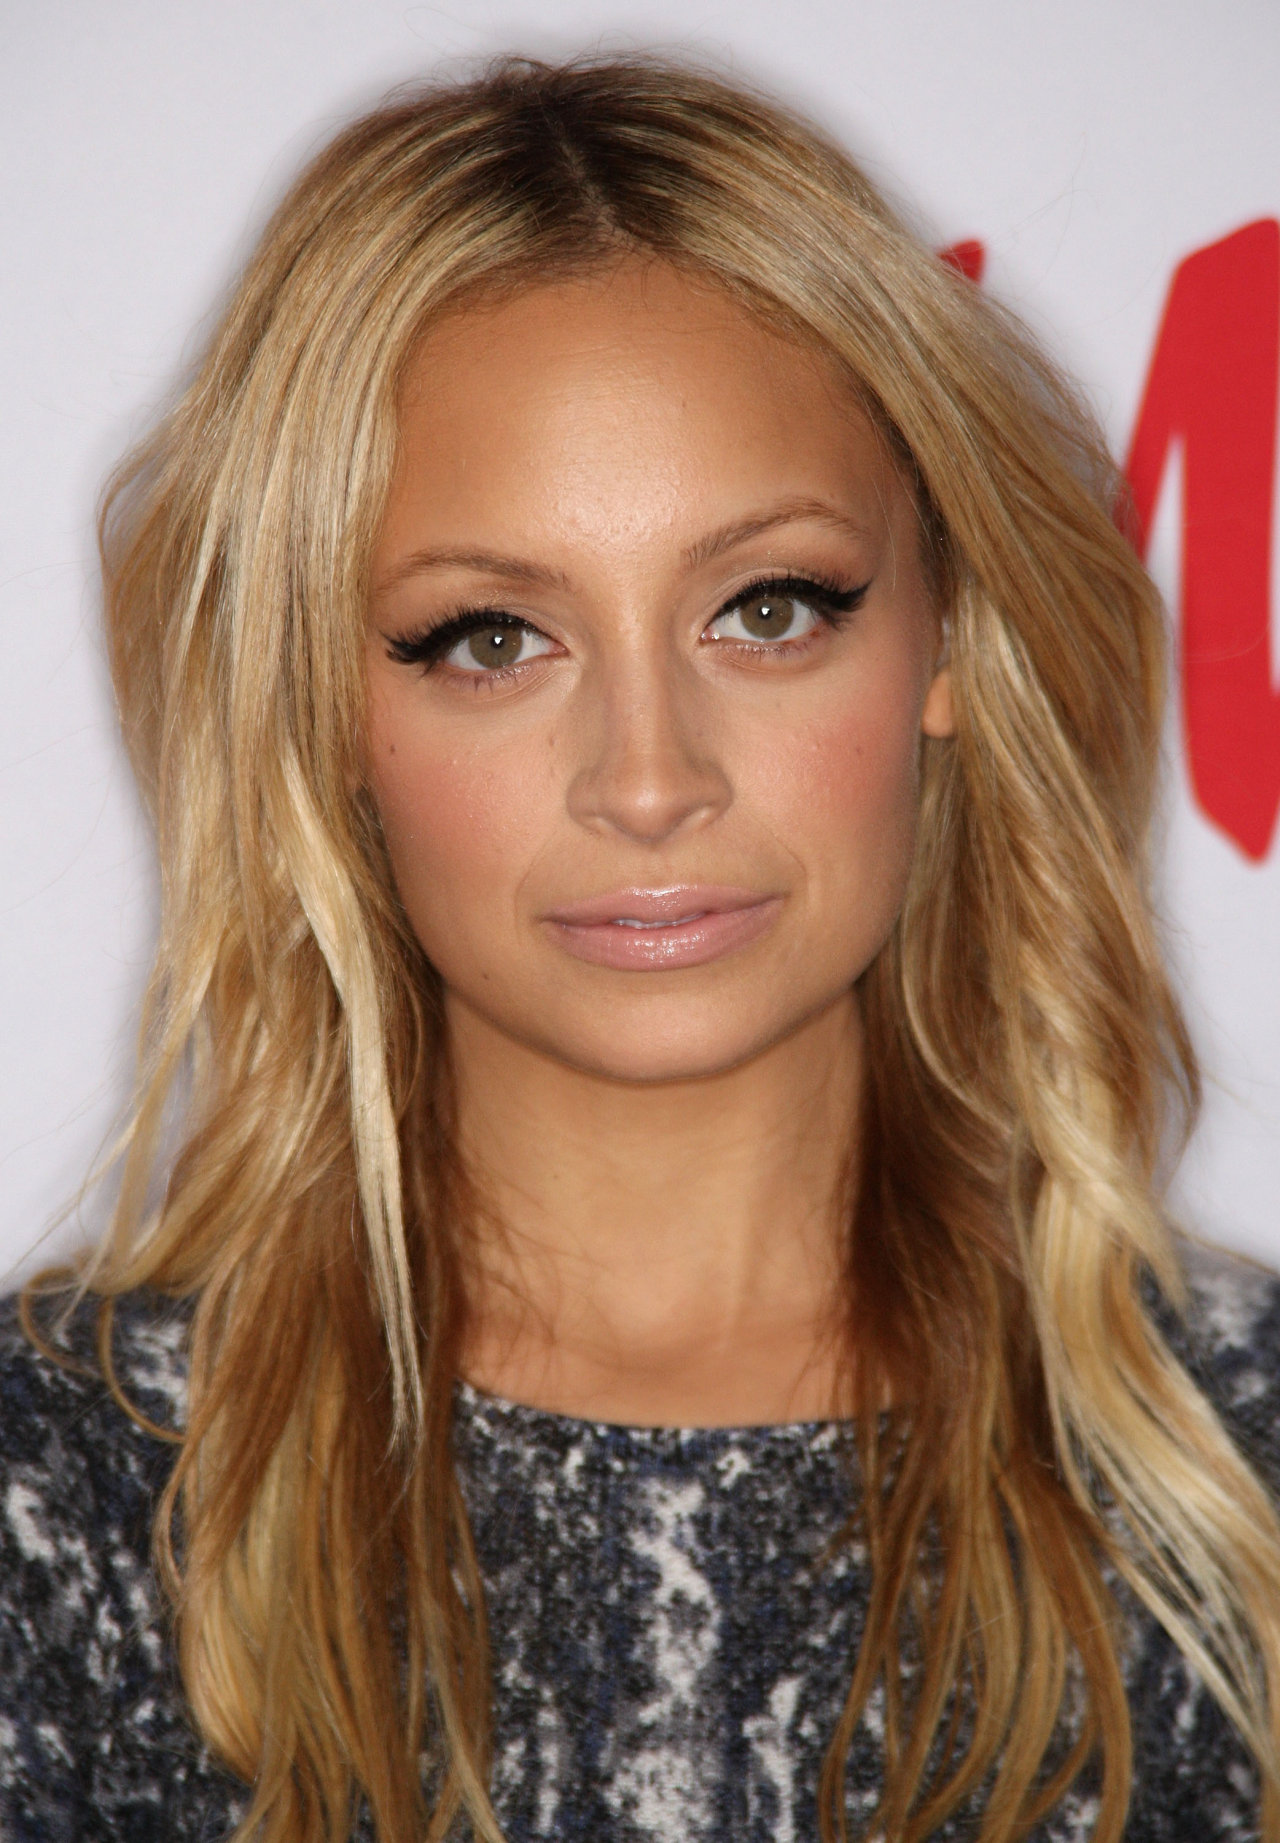 Nicole Richie leaked wallpapers